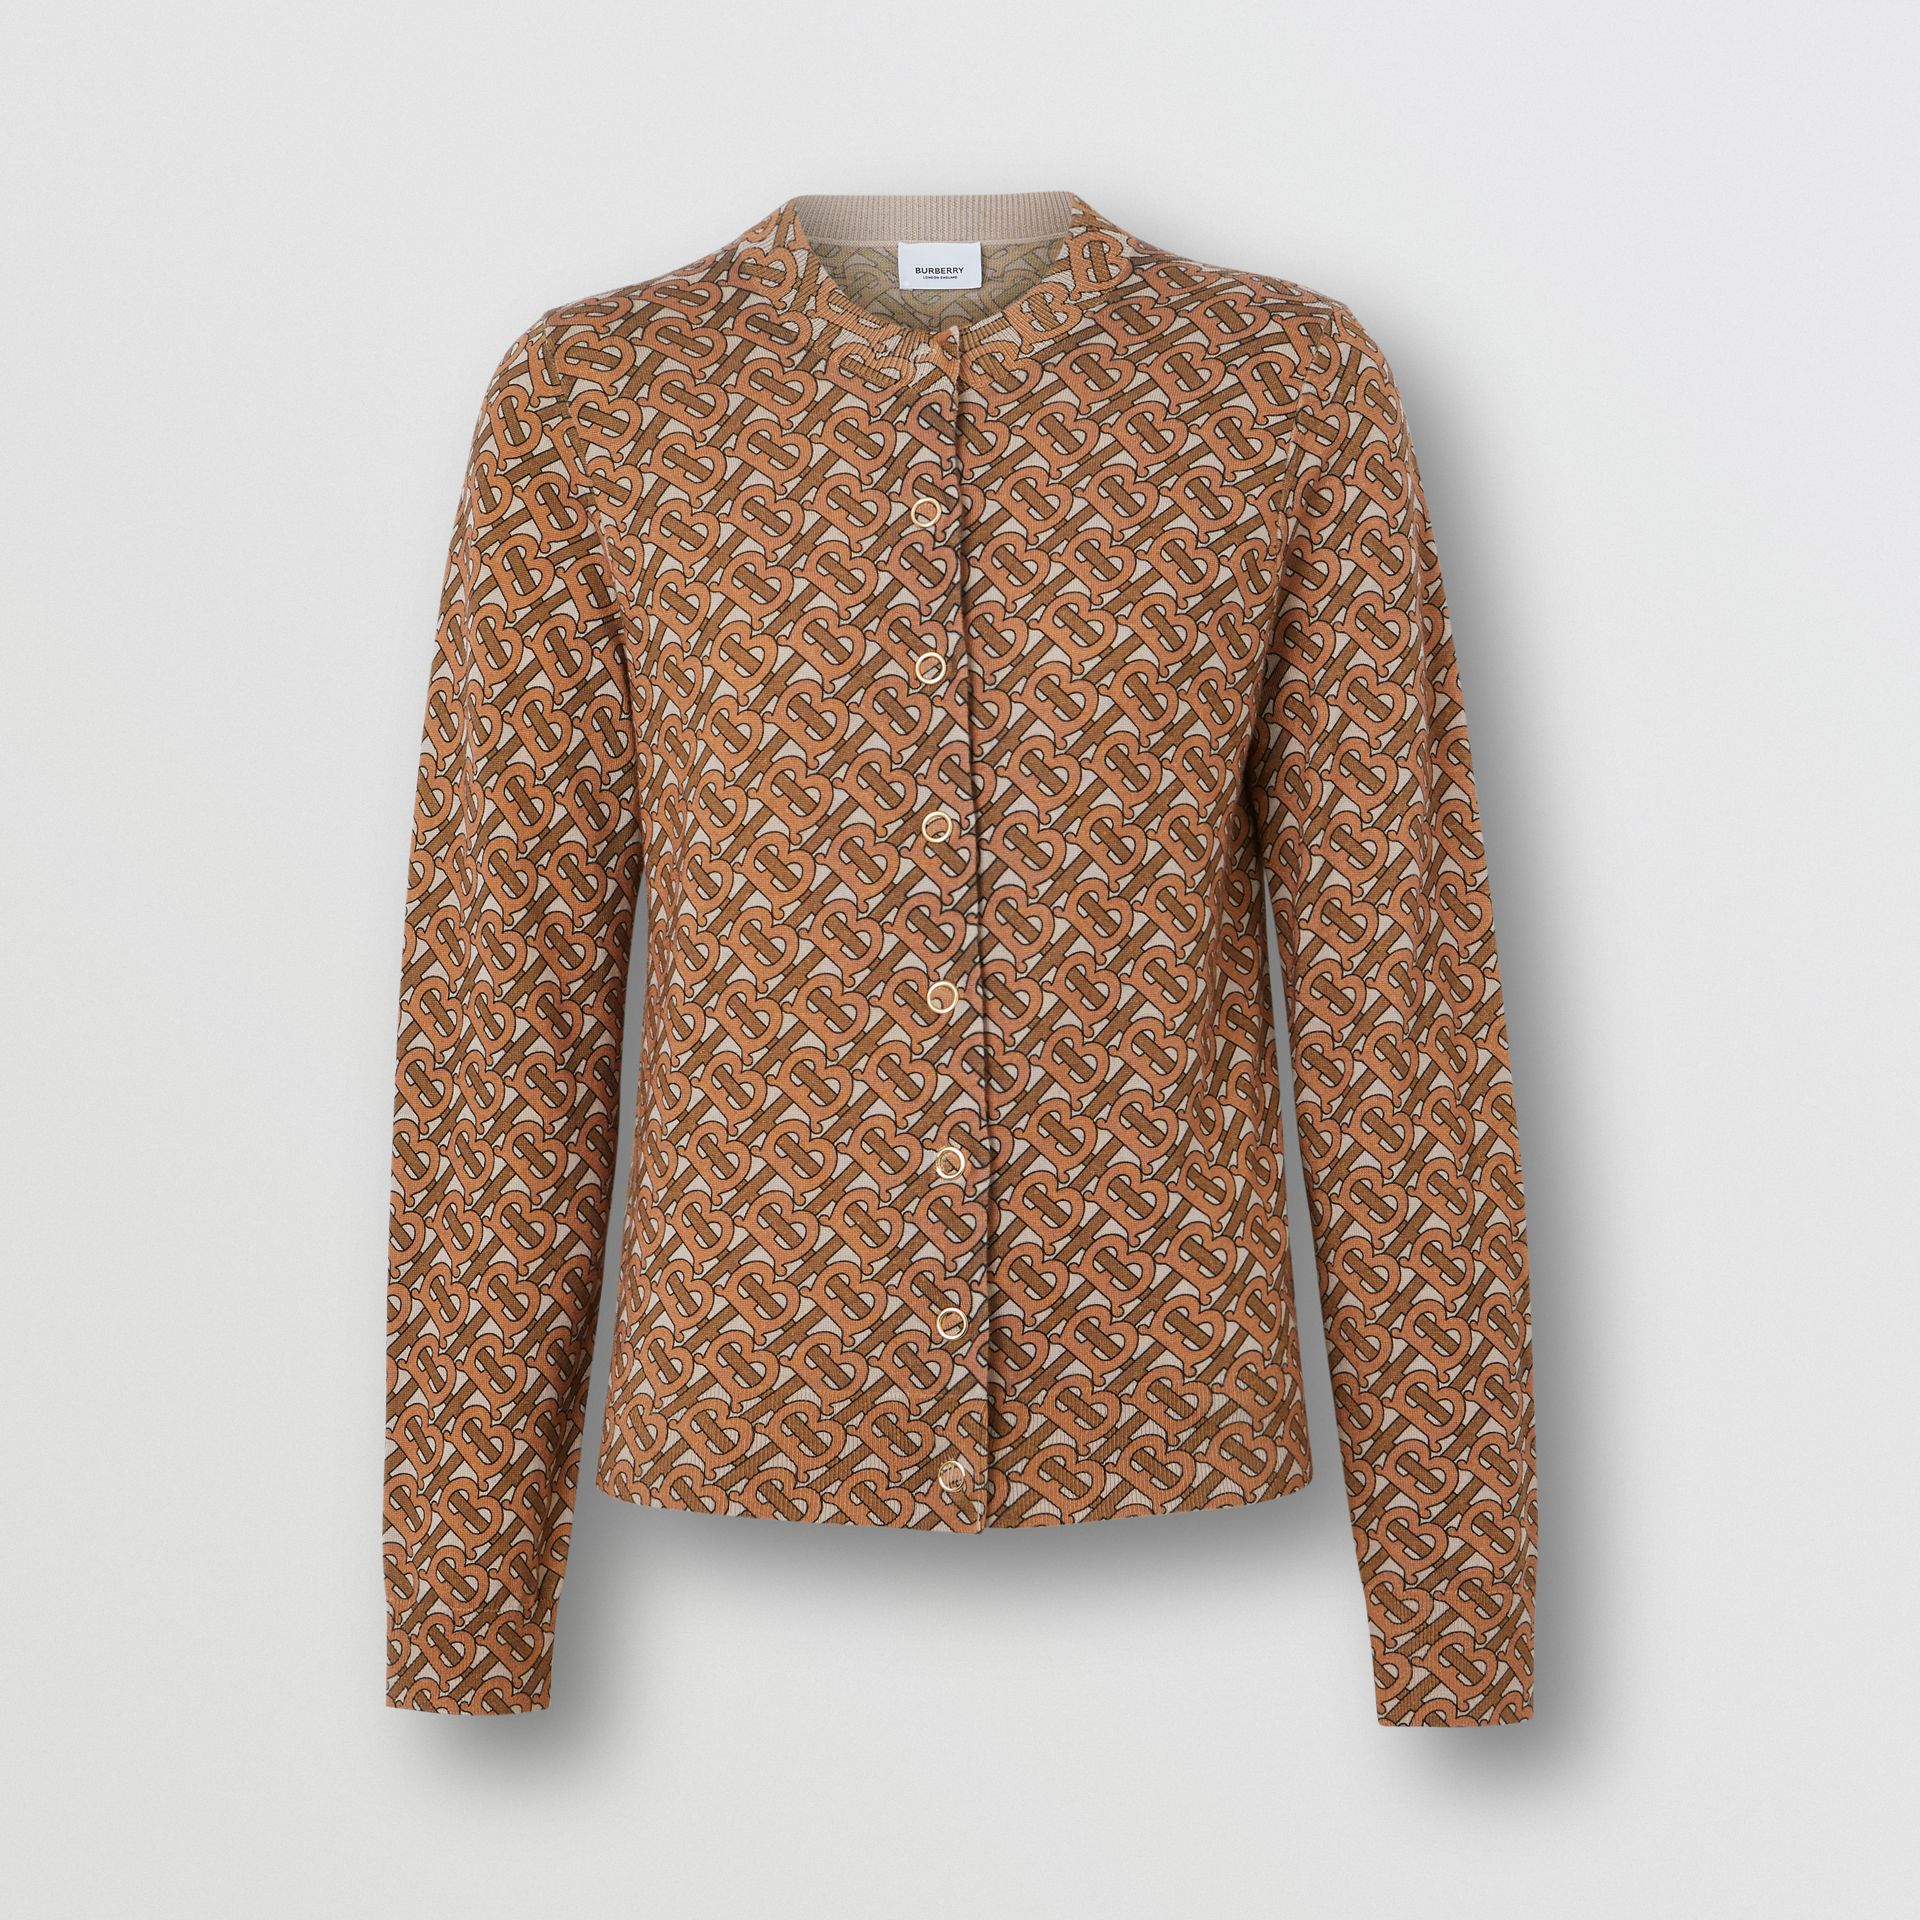 Monogram Print Merino Wool Cardigan in Beige - Women | Burberry United States - gallery image 3